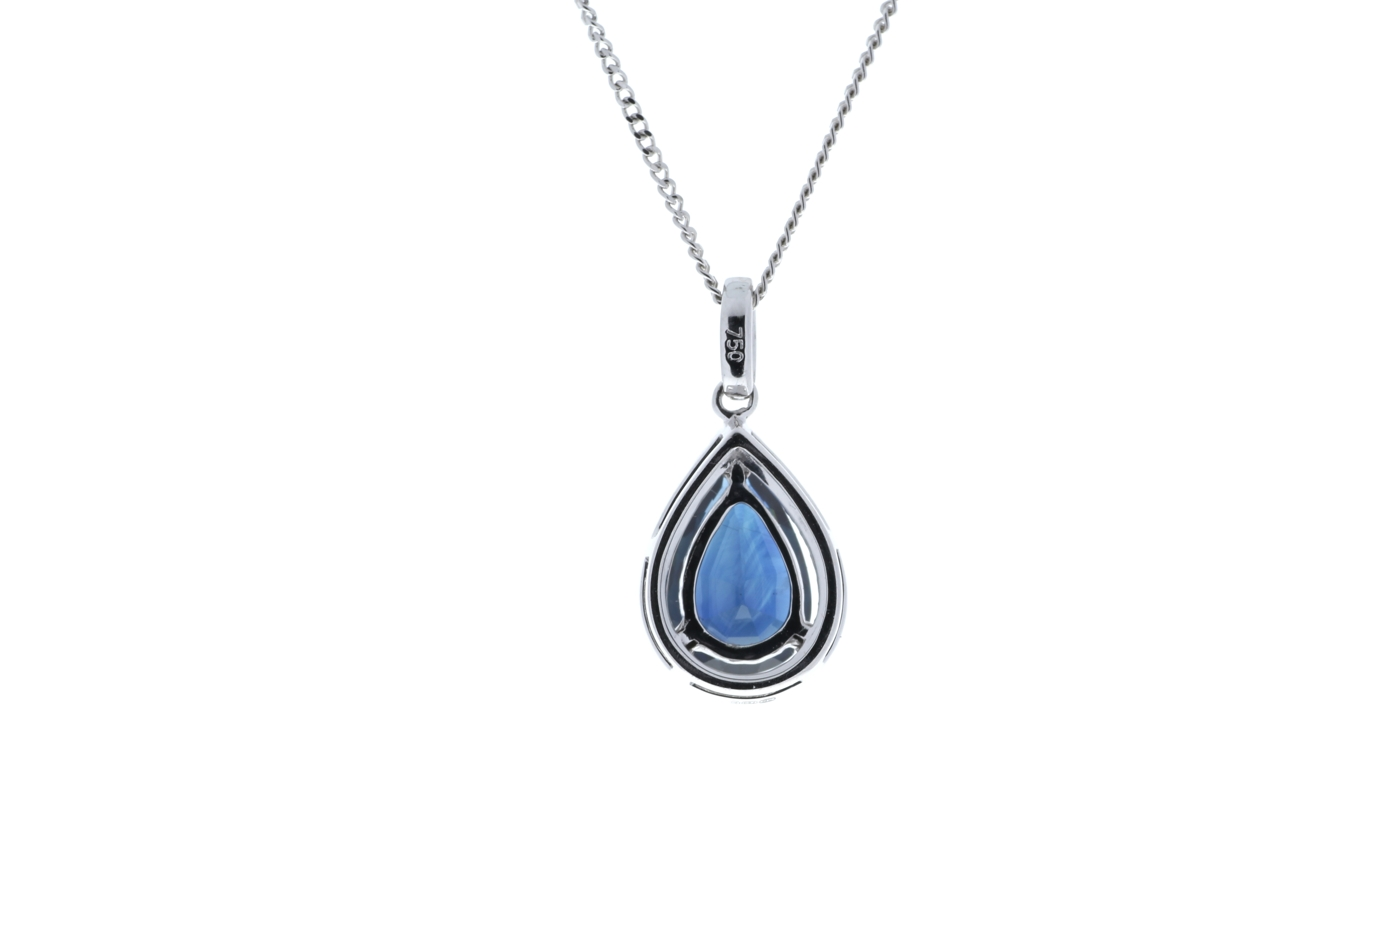 18ct White Gold Diamond And Sapphire Pendant 2.35 Carats - Image 3 of 4